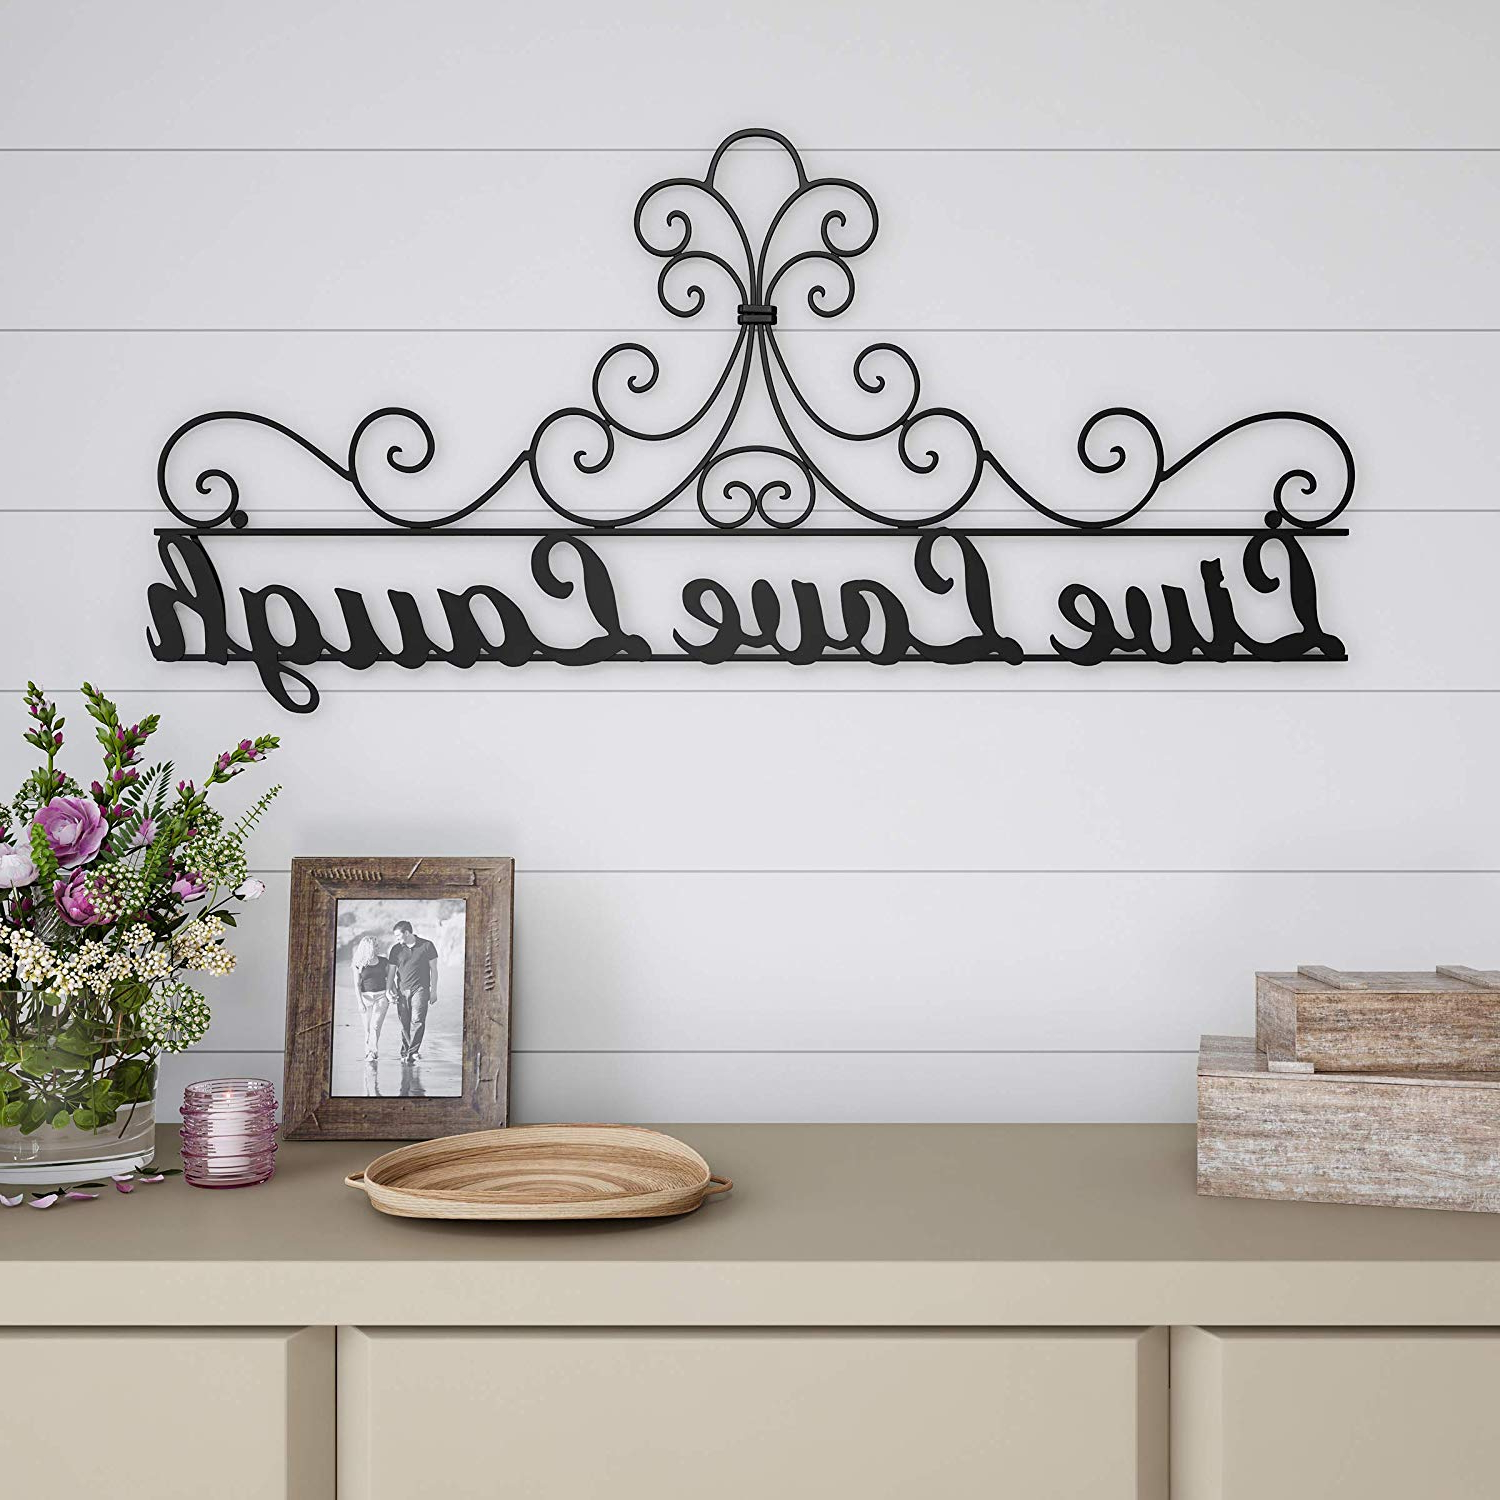 Amazon: Lavish Home Metal Cutout Live Laugh Love Wall Sign 3D Intended For Well Known Choose Happiness 3D Cursive Metal Wall Decor (View 1 of 20)